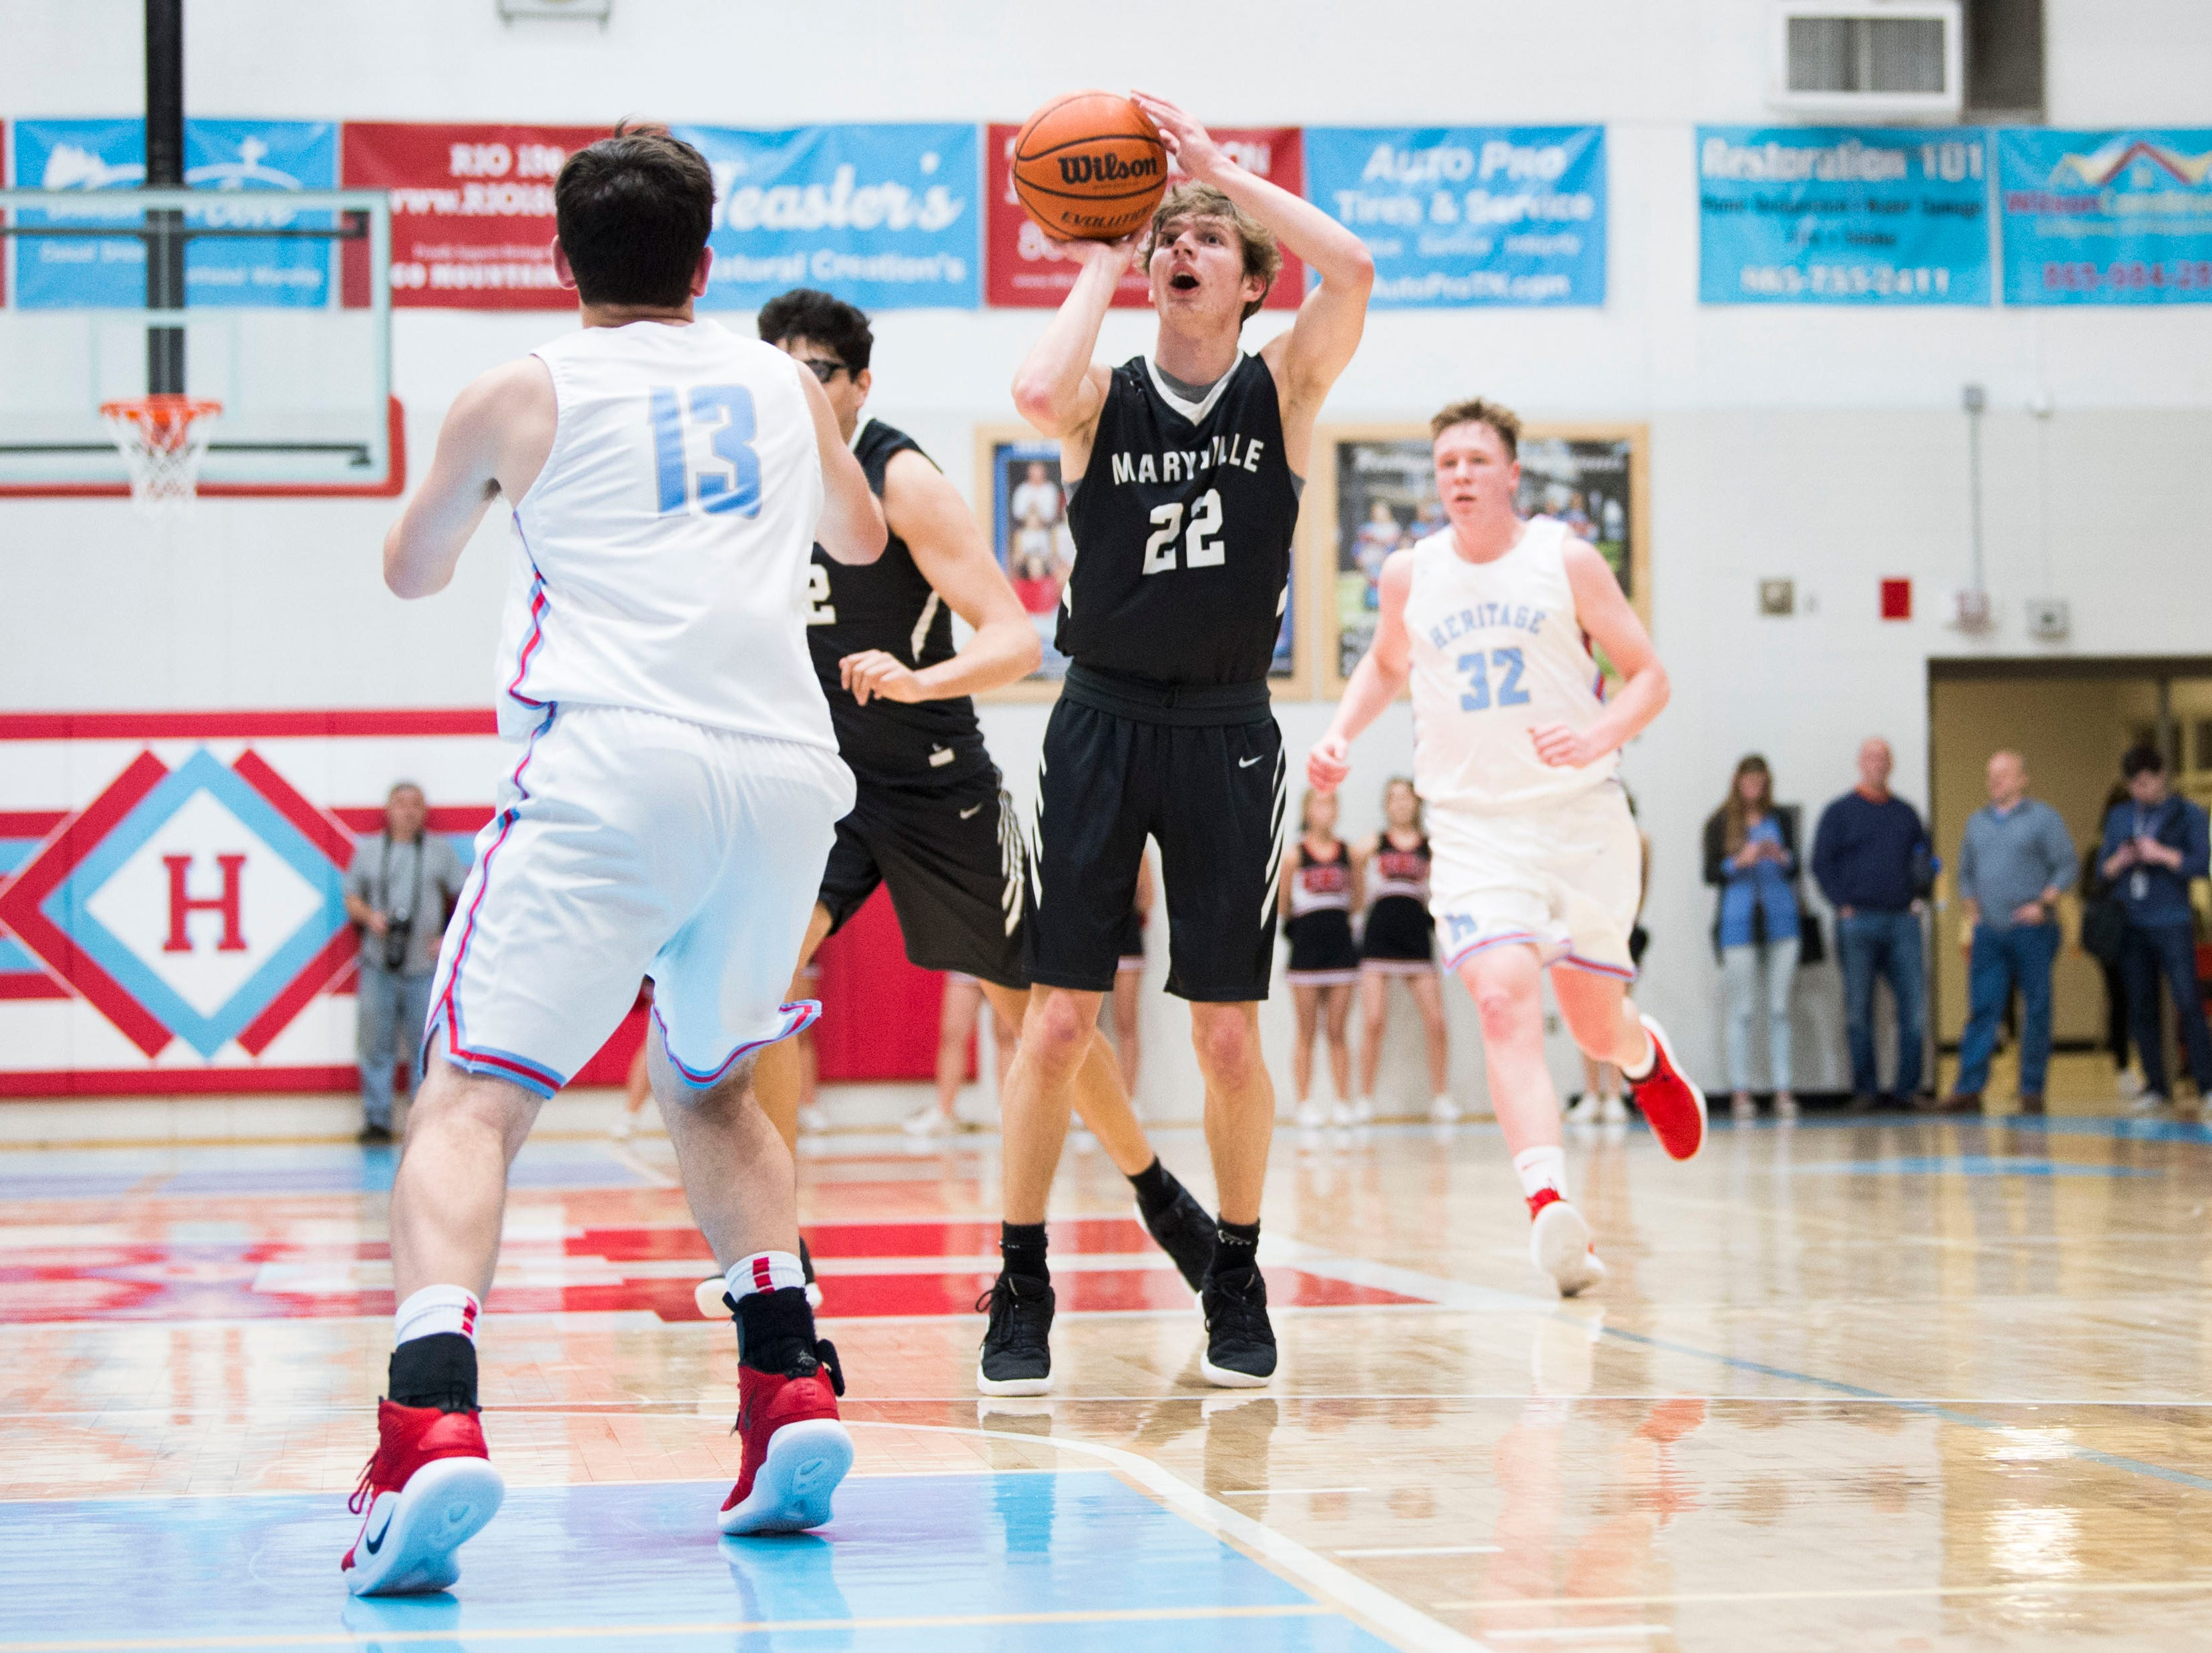 Maryville's Joe Anderson (22) takes a shot during a high school basketball game between Maryville and Heritage at Heritage Friday, Jan. 4, 2019. Both Maryville boys and girls teams beat Heritage.